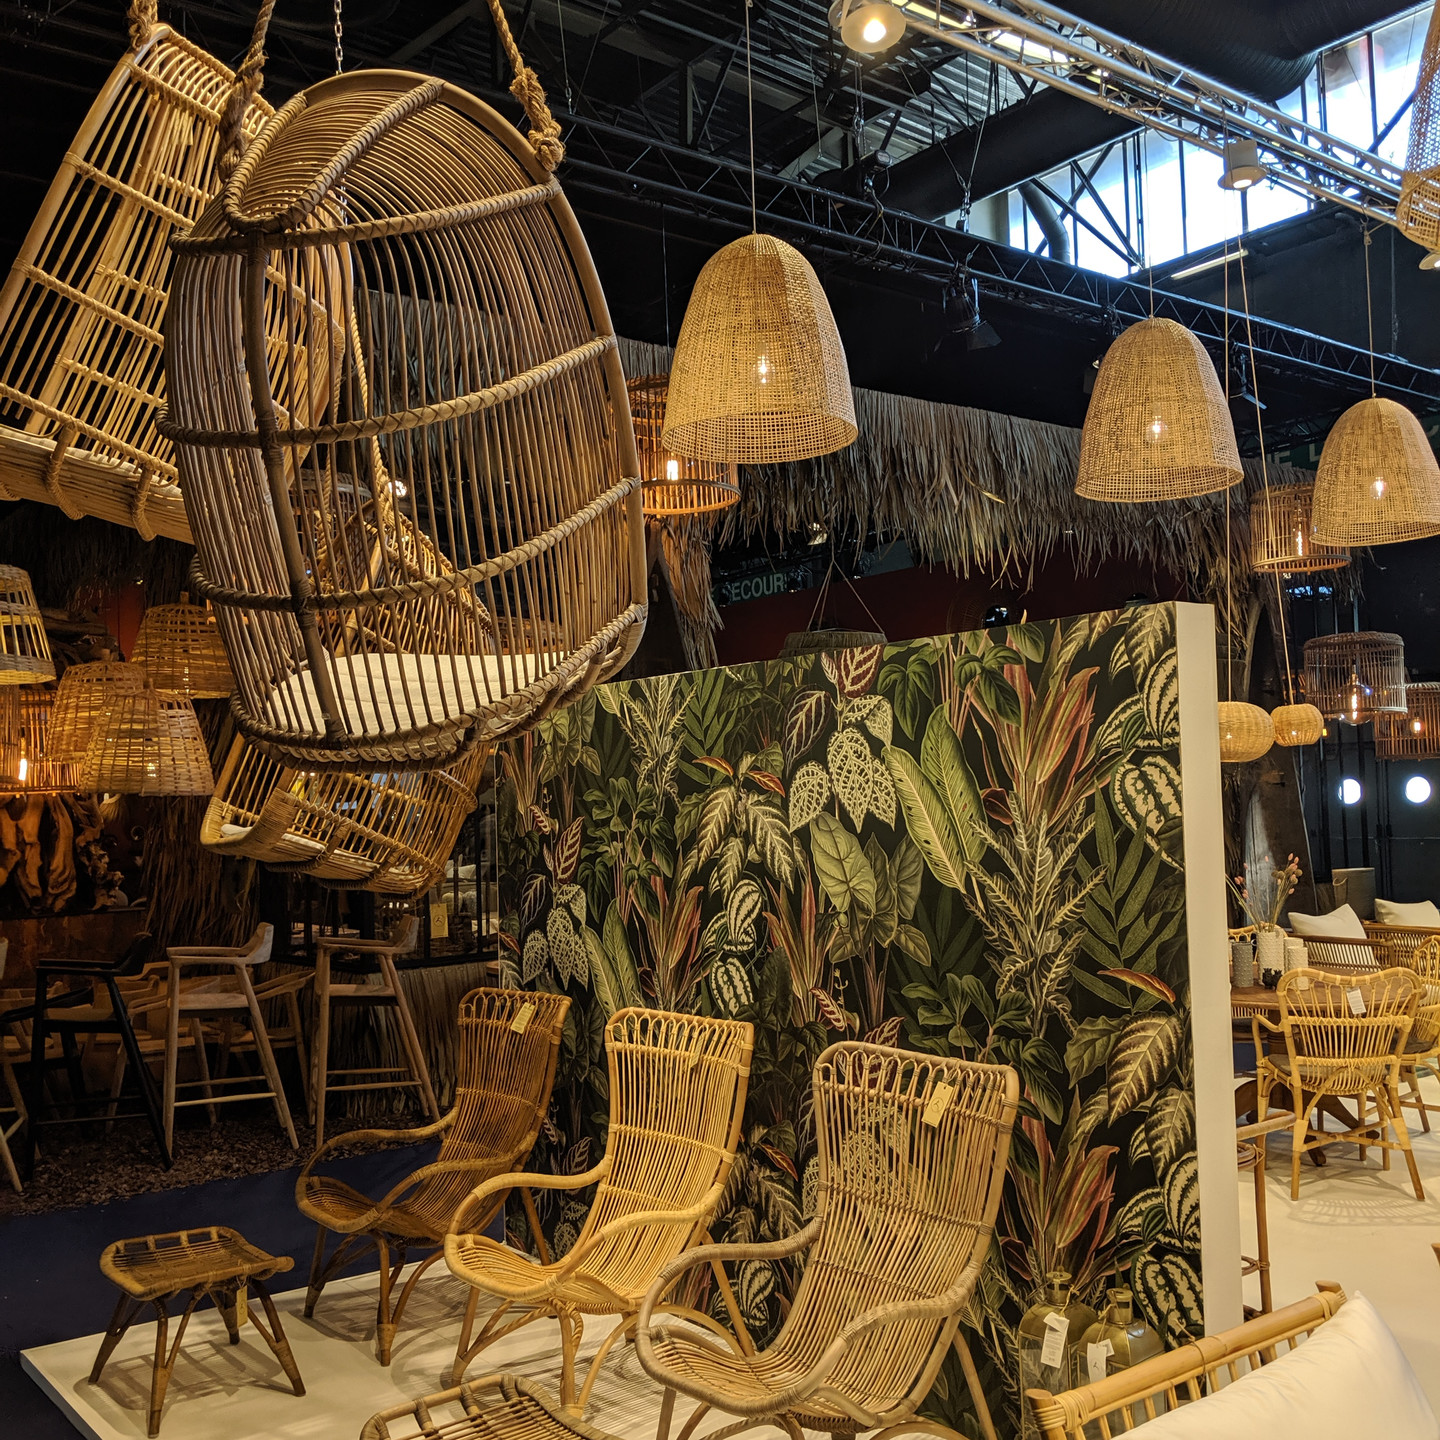 Sika Design Maison & Objet Cane Furniture Display with Jungle Wallpaper